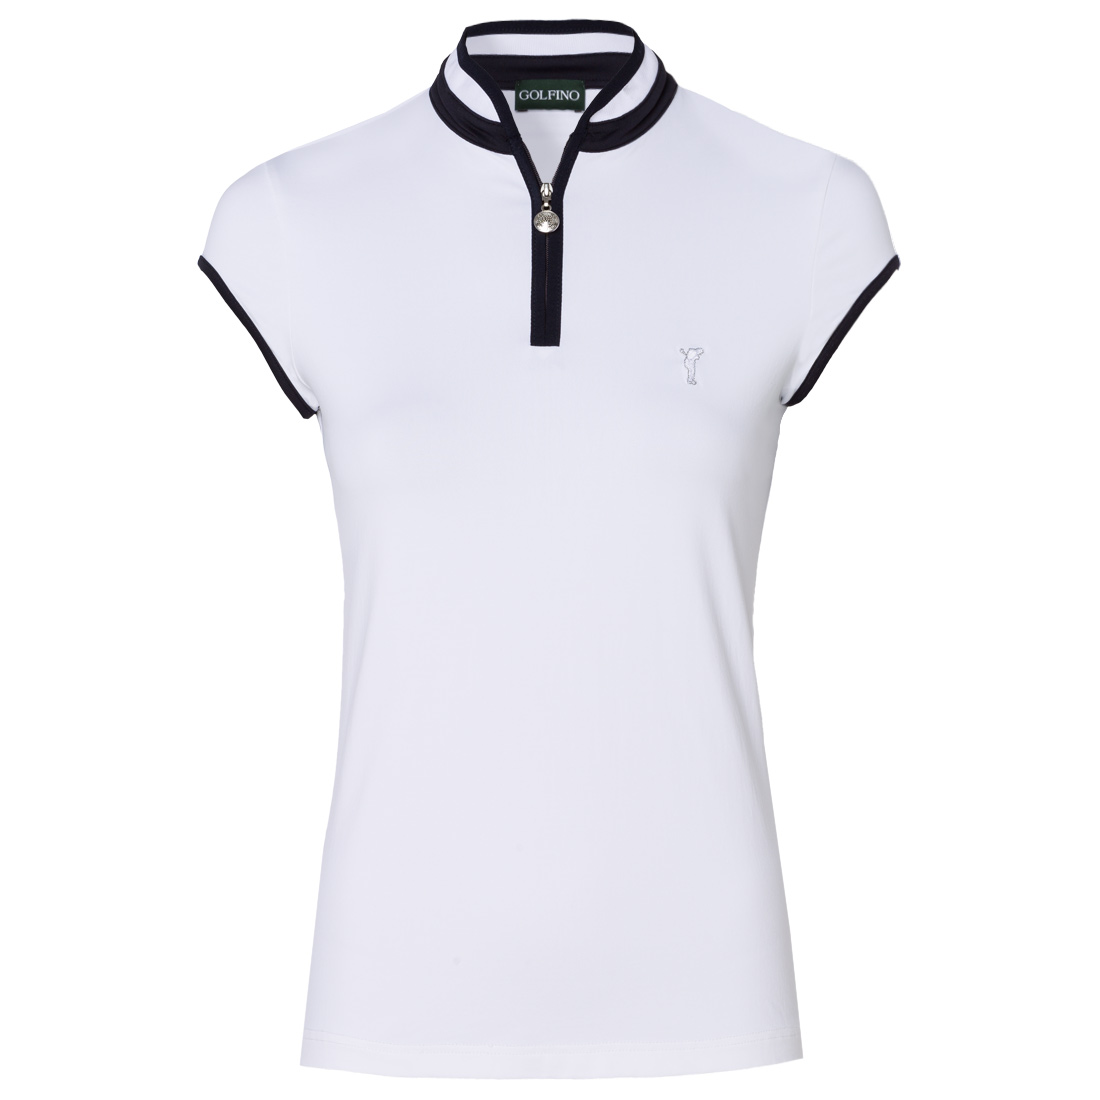 Ladies' polo shirt with troyer-style collar and cap sleeves made from sun protection fabric